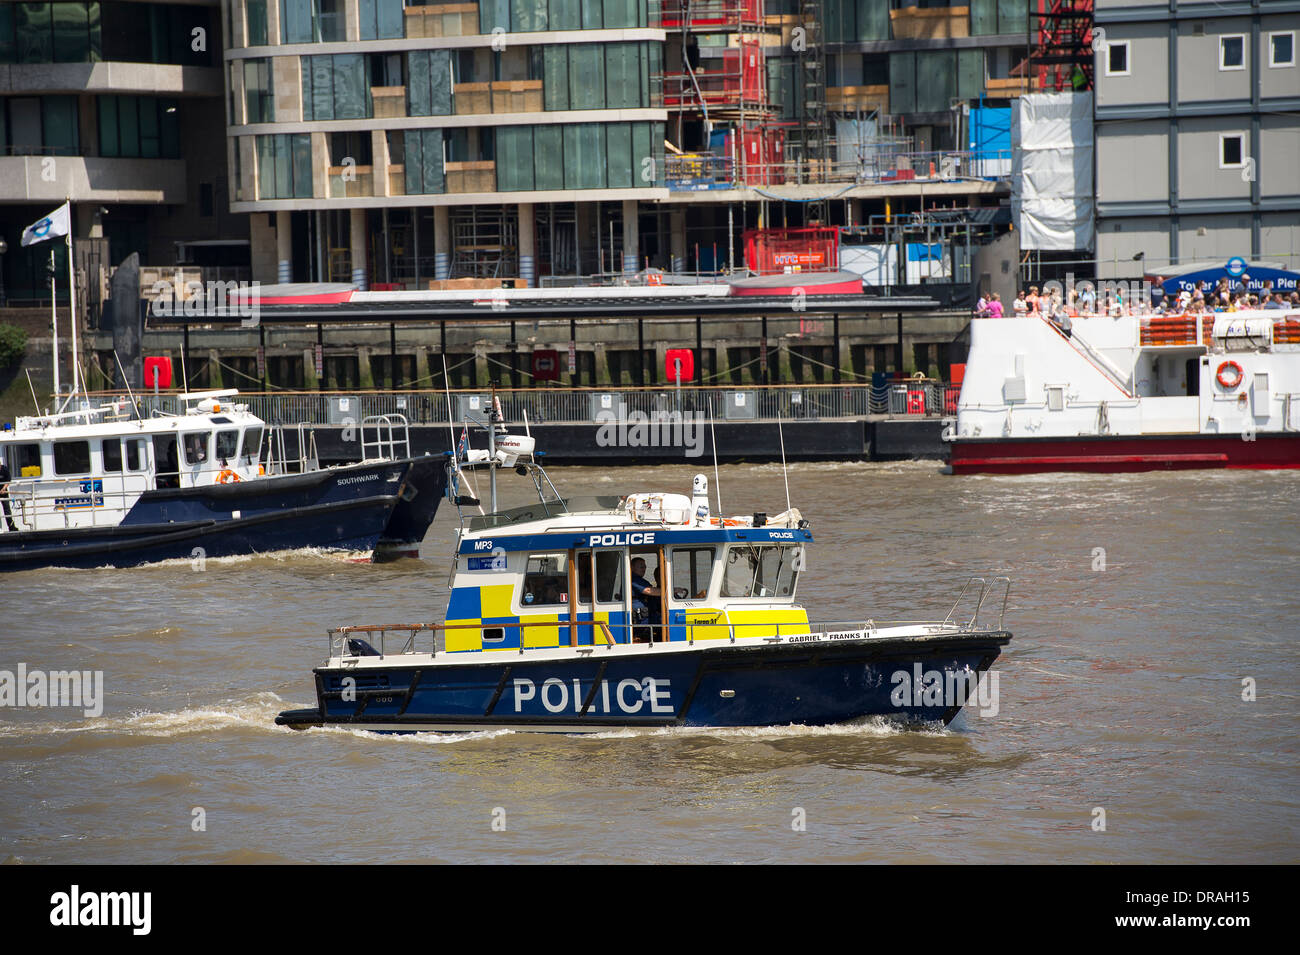 Boat of the Marine Policing Unit on the River Thames, London, England. - Stock Image